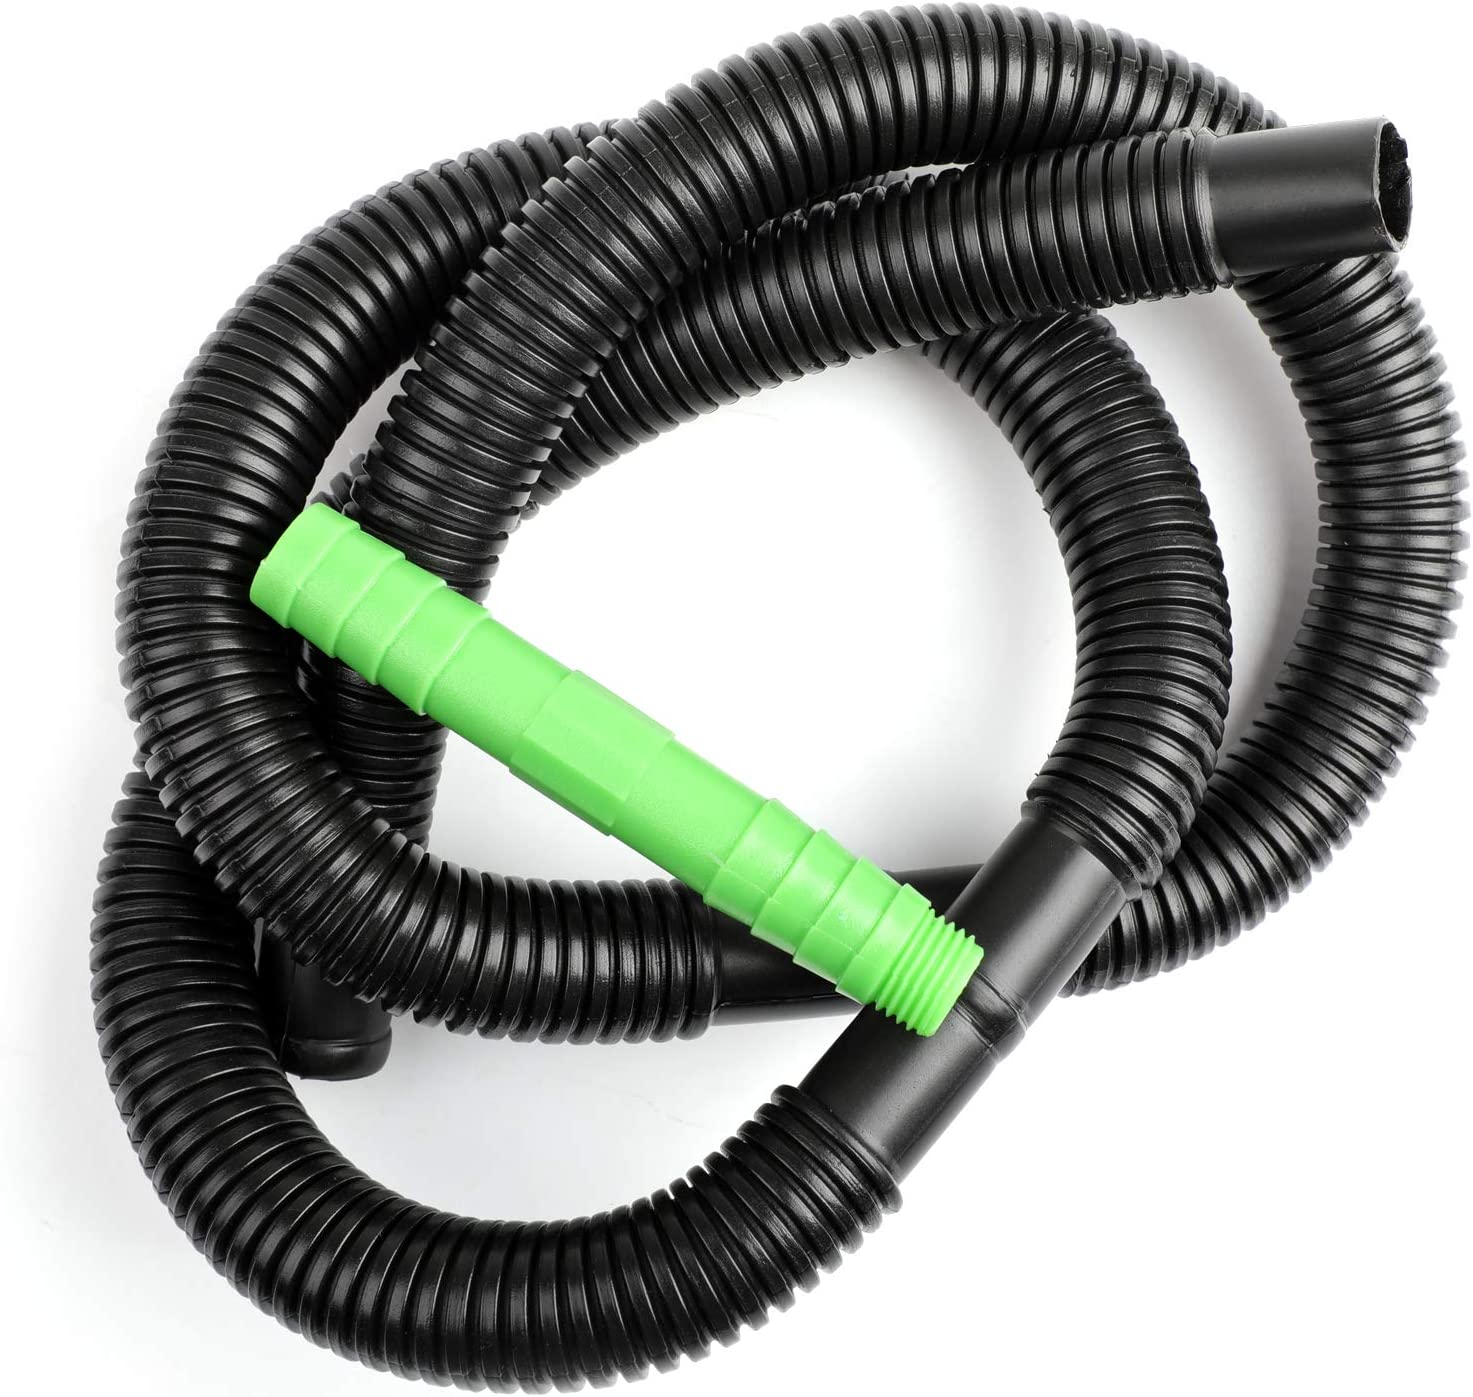 Artudatech Oil Change Hose Drain Kit fits for Yama-ha Outboard 4-Stroke 15 Hp-150 Hp 1994 to Now